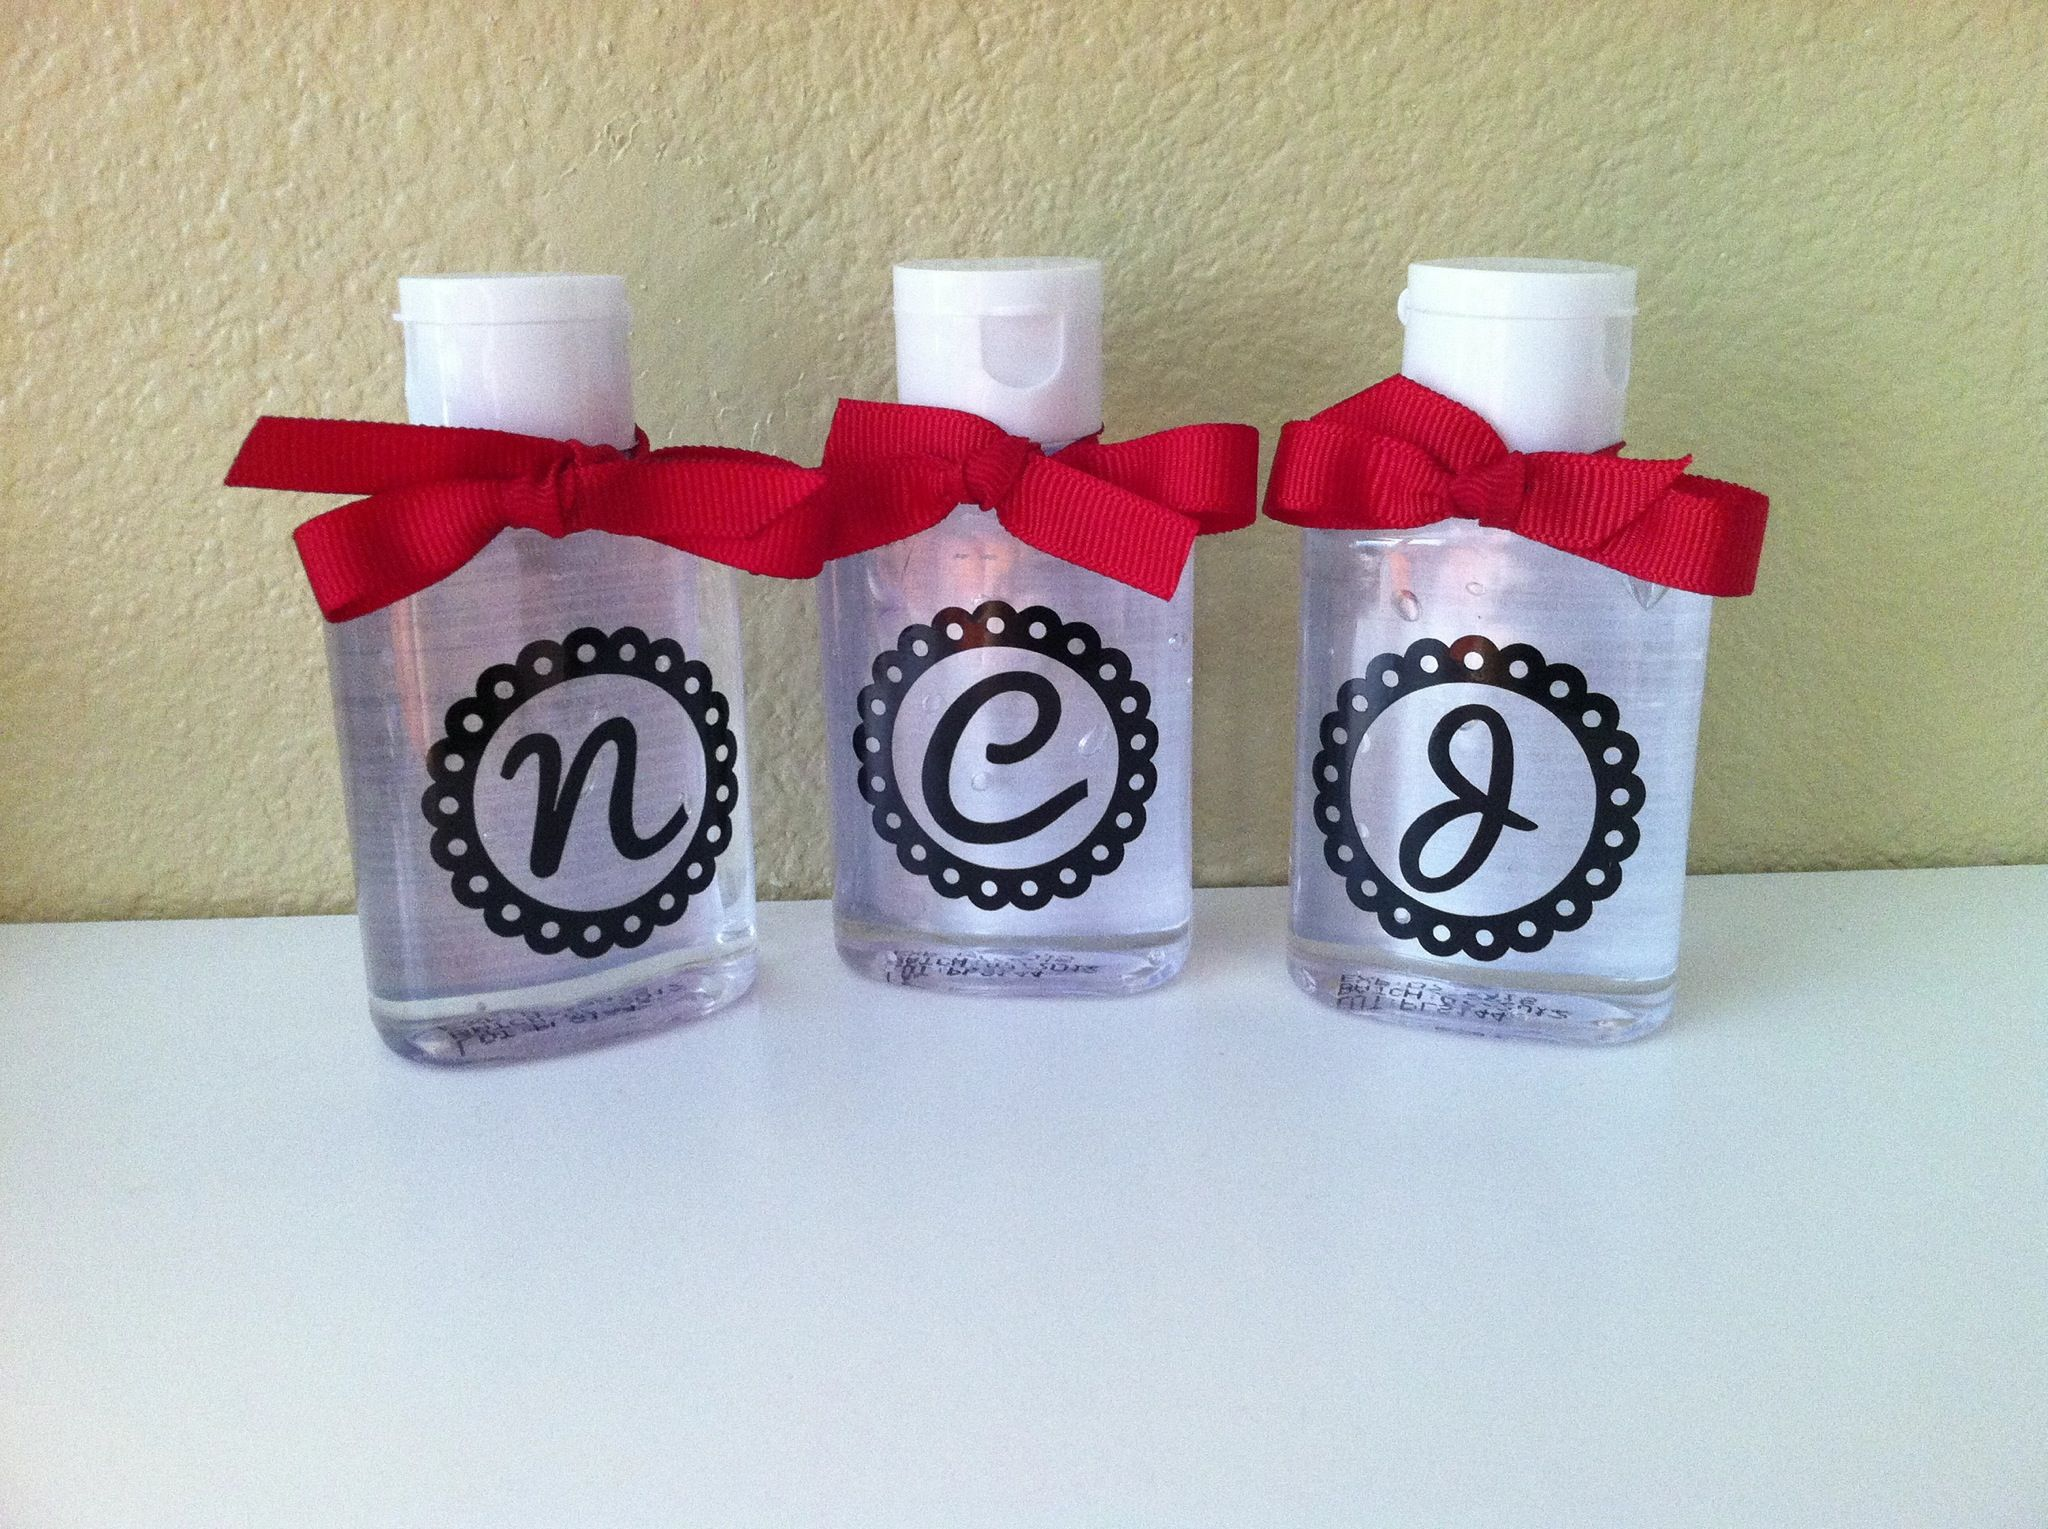 Vinyl Decals For Custom Hand Sanitizer Bottles Monogram Decal